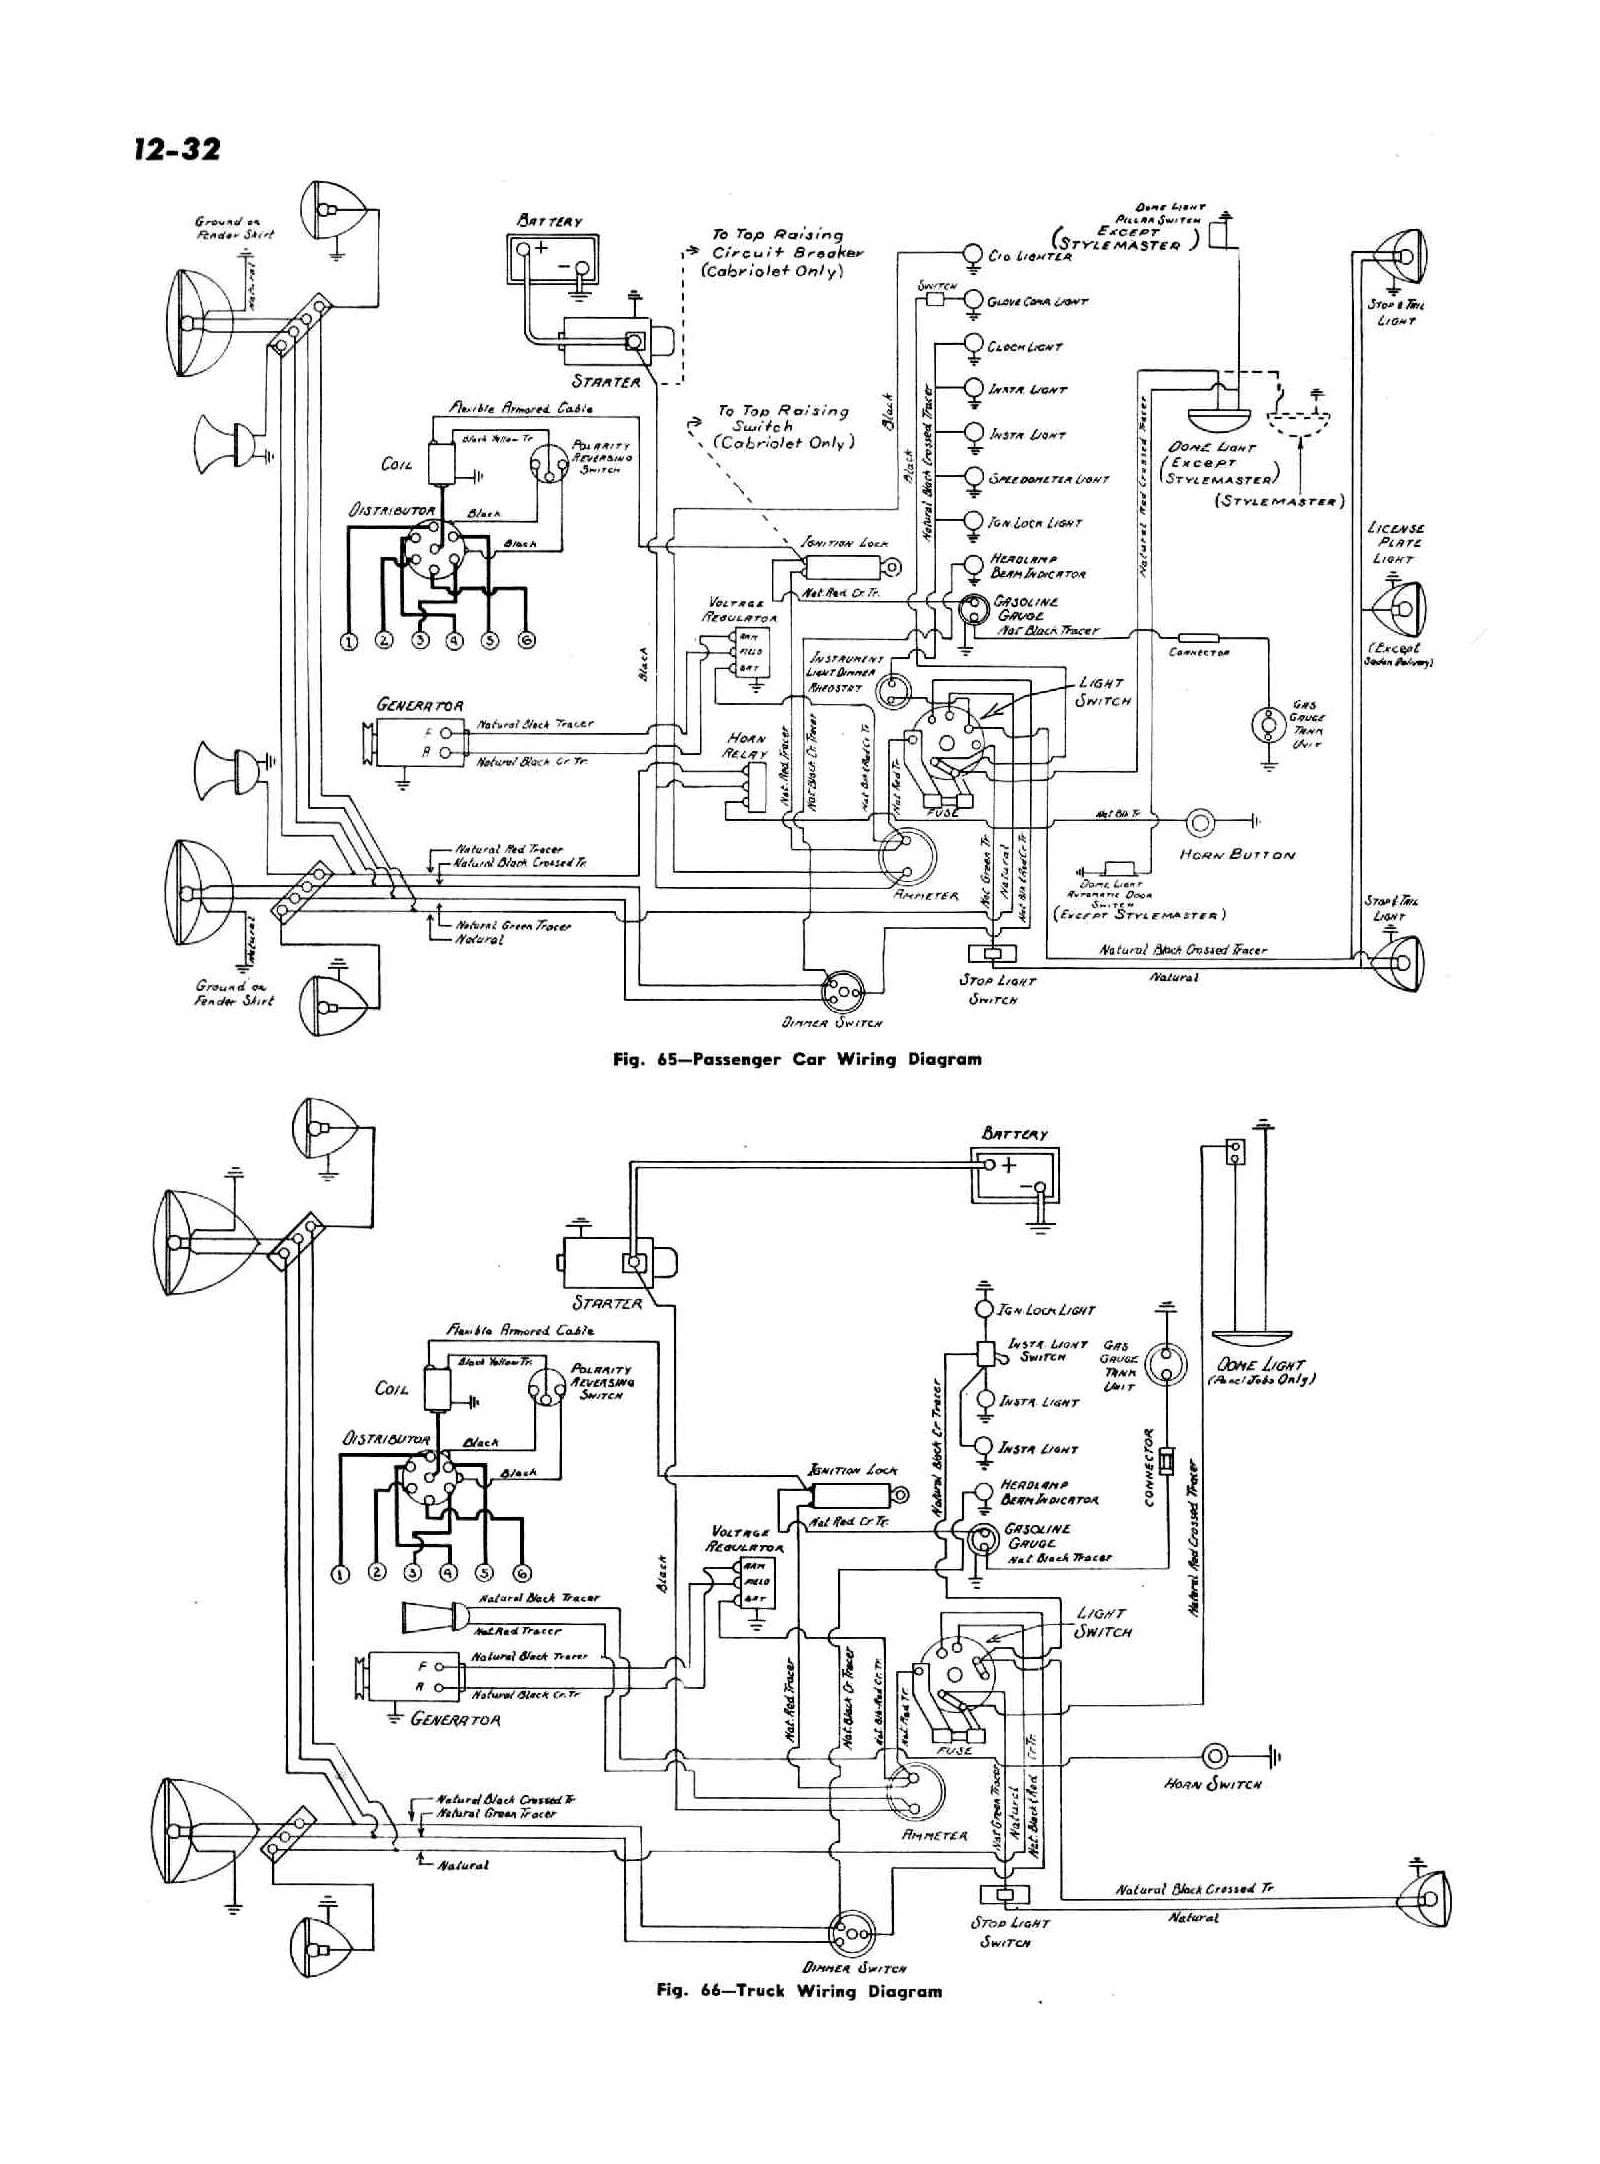 Wiring Diagram Cars Trucks Wiring Diagram Cars Trucks Truck Horn Wiring Wiring Diagrams 1959 Chevy Truck Chevy Trucks Cars Trucks